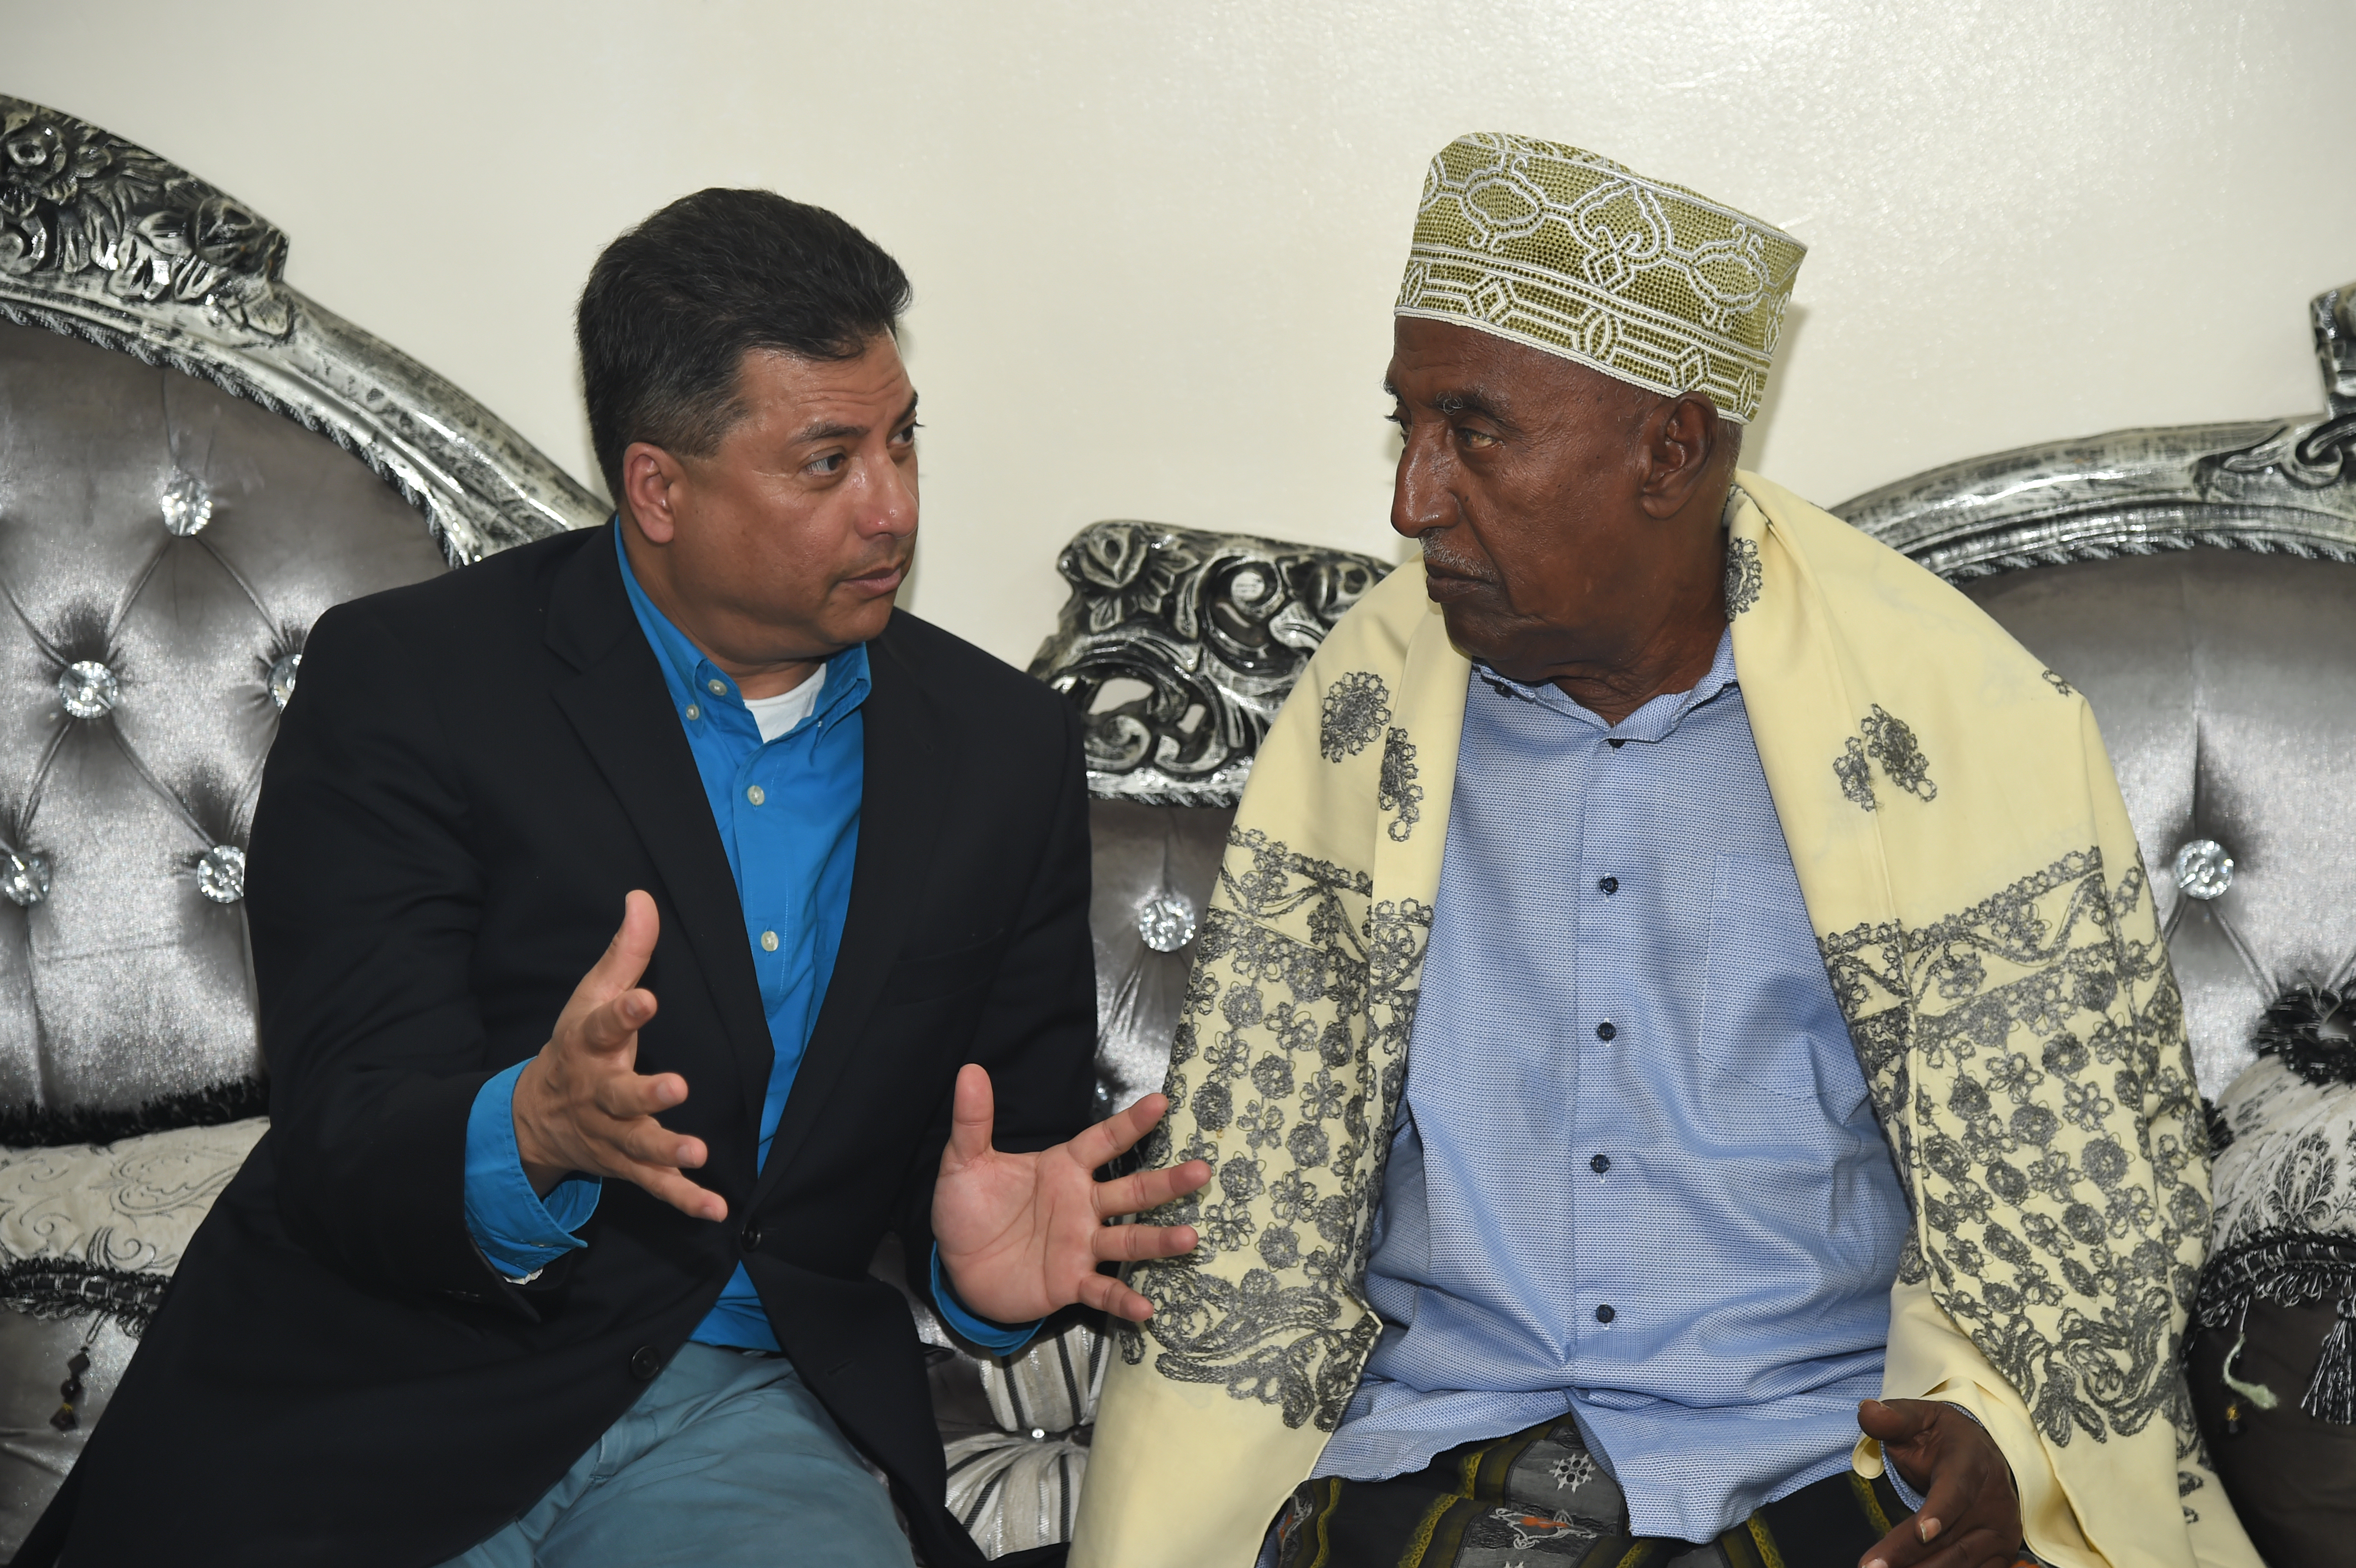 U.S. Navy Cmdr. Abuhena Saifulislam, deputy command chaplain for U.S. Africa Command, describes Muslim life in America to Abdelkader Mohamed Humad, Sultan of Tadjoura during a visit to Tadjoura, Djibouti Jan. 30, 2017. The meeting was part of a week-long temporary duty assignment to Djibouti for exercise Cutlass Express 2017, during which Saifulislam was able to engage with key Muslim leaders and local practitioners of the Islamic faith. (U.S. Air National Guard photo by Master Sgt. Paul Gorman)